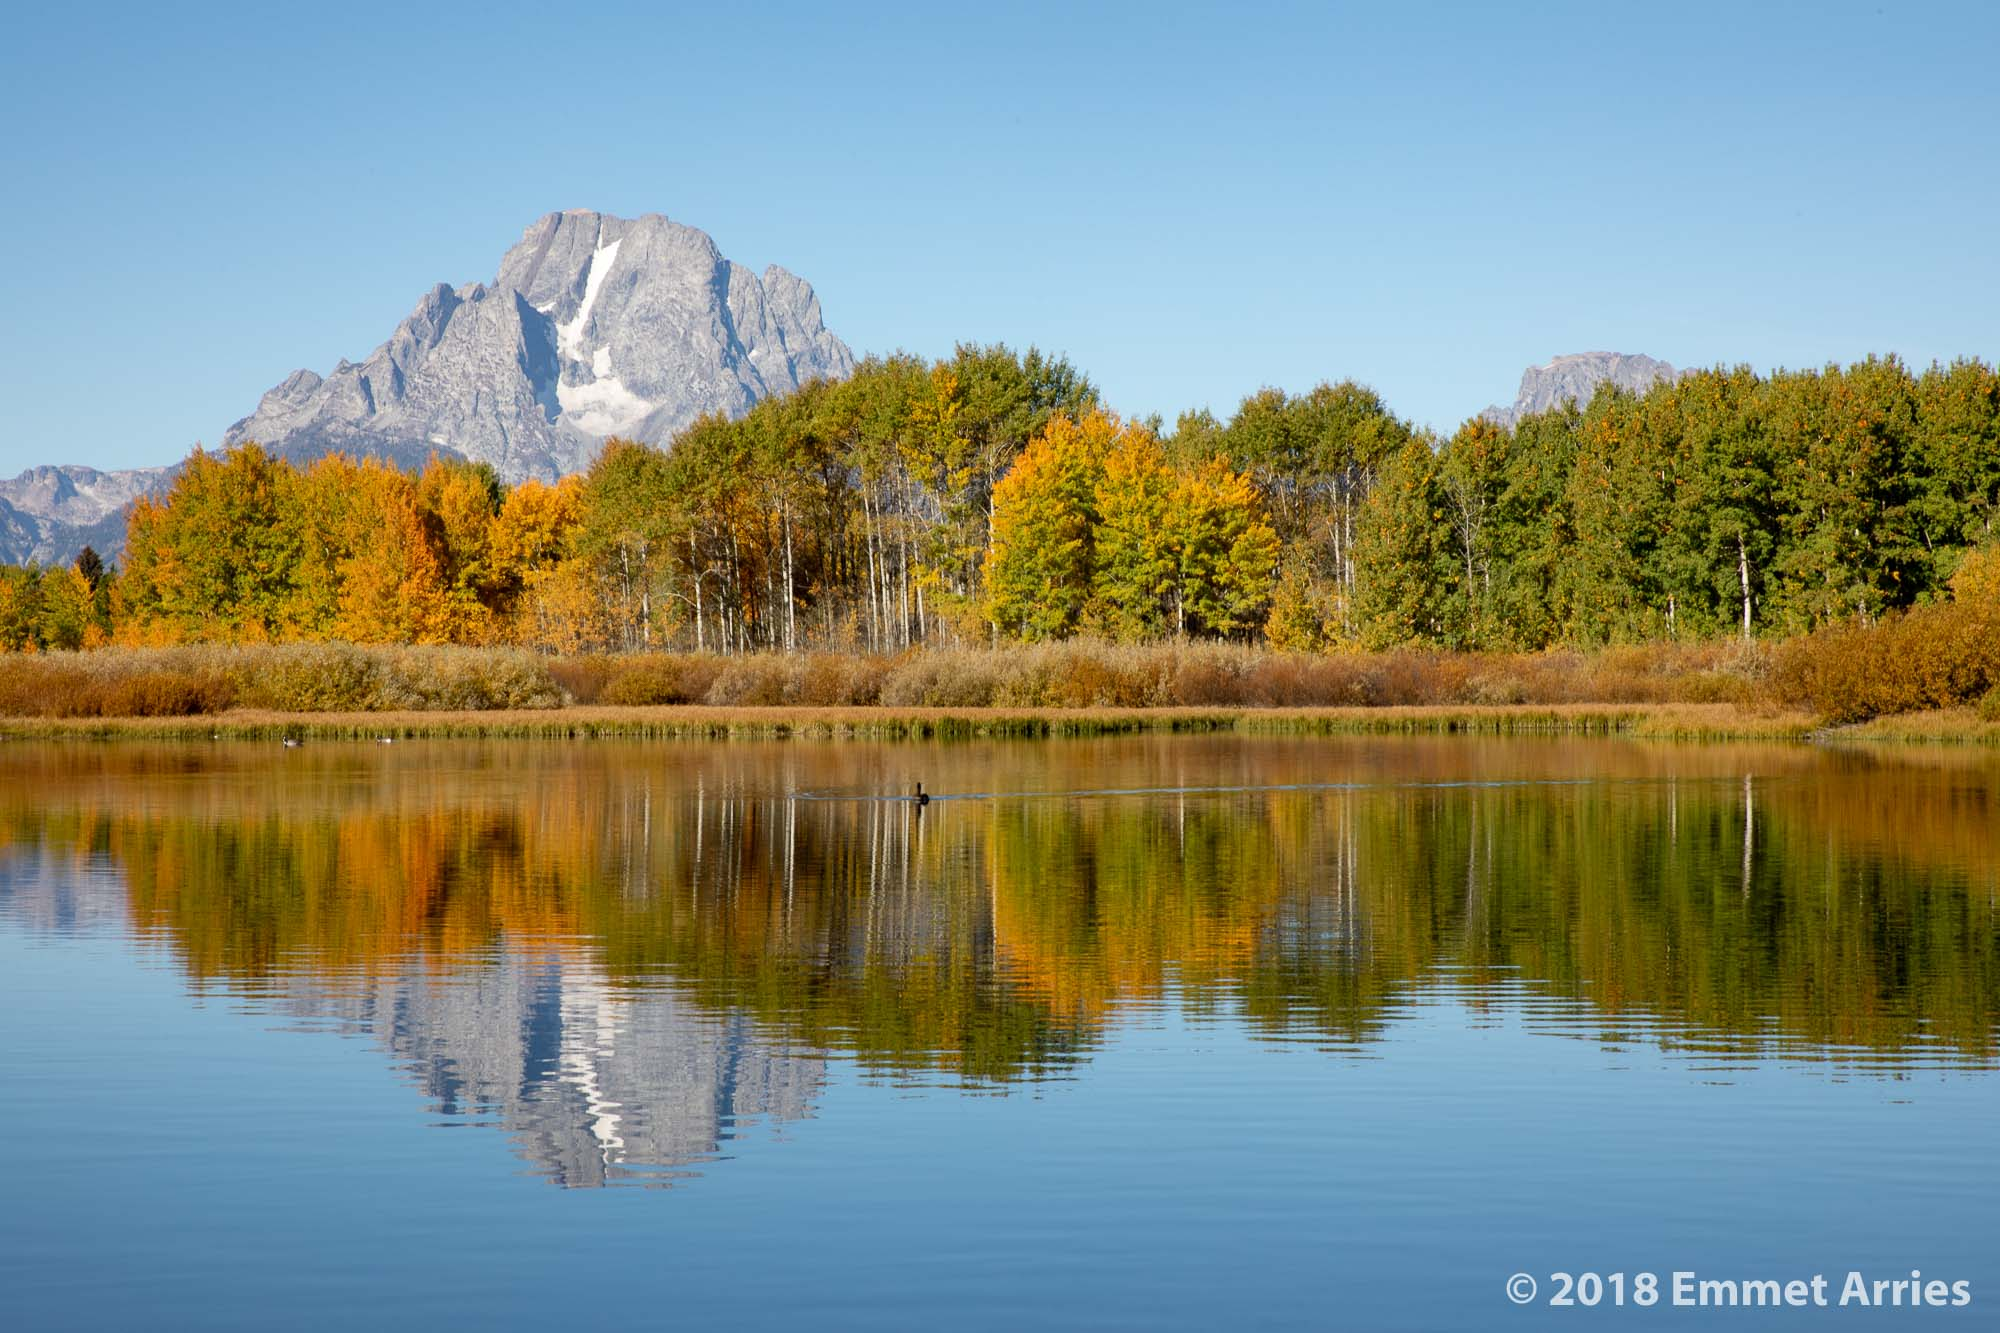 In the fall, the trees at Oxbow bend turn brilliant reds, yellows, and oranges. It is truly magnificent.